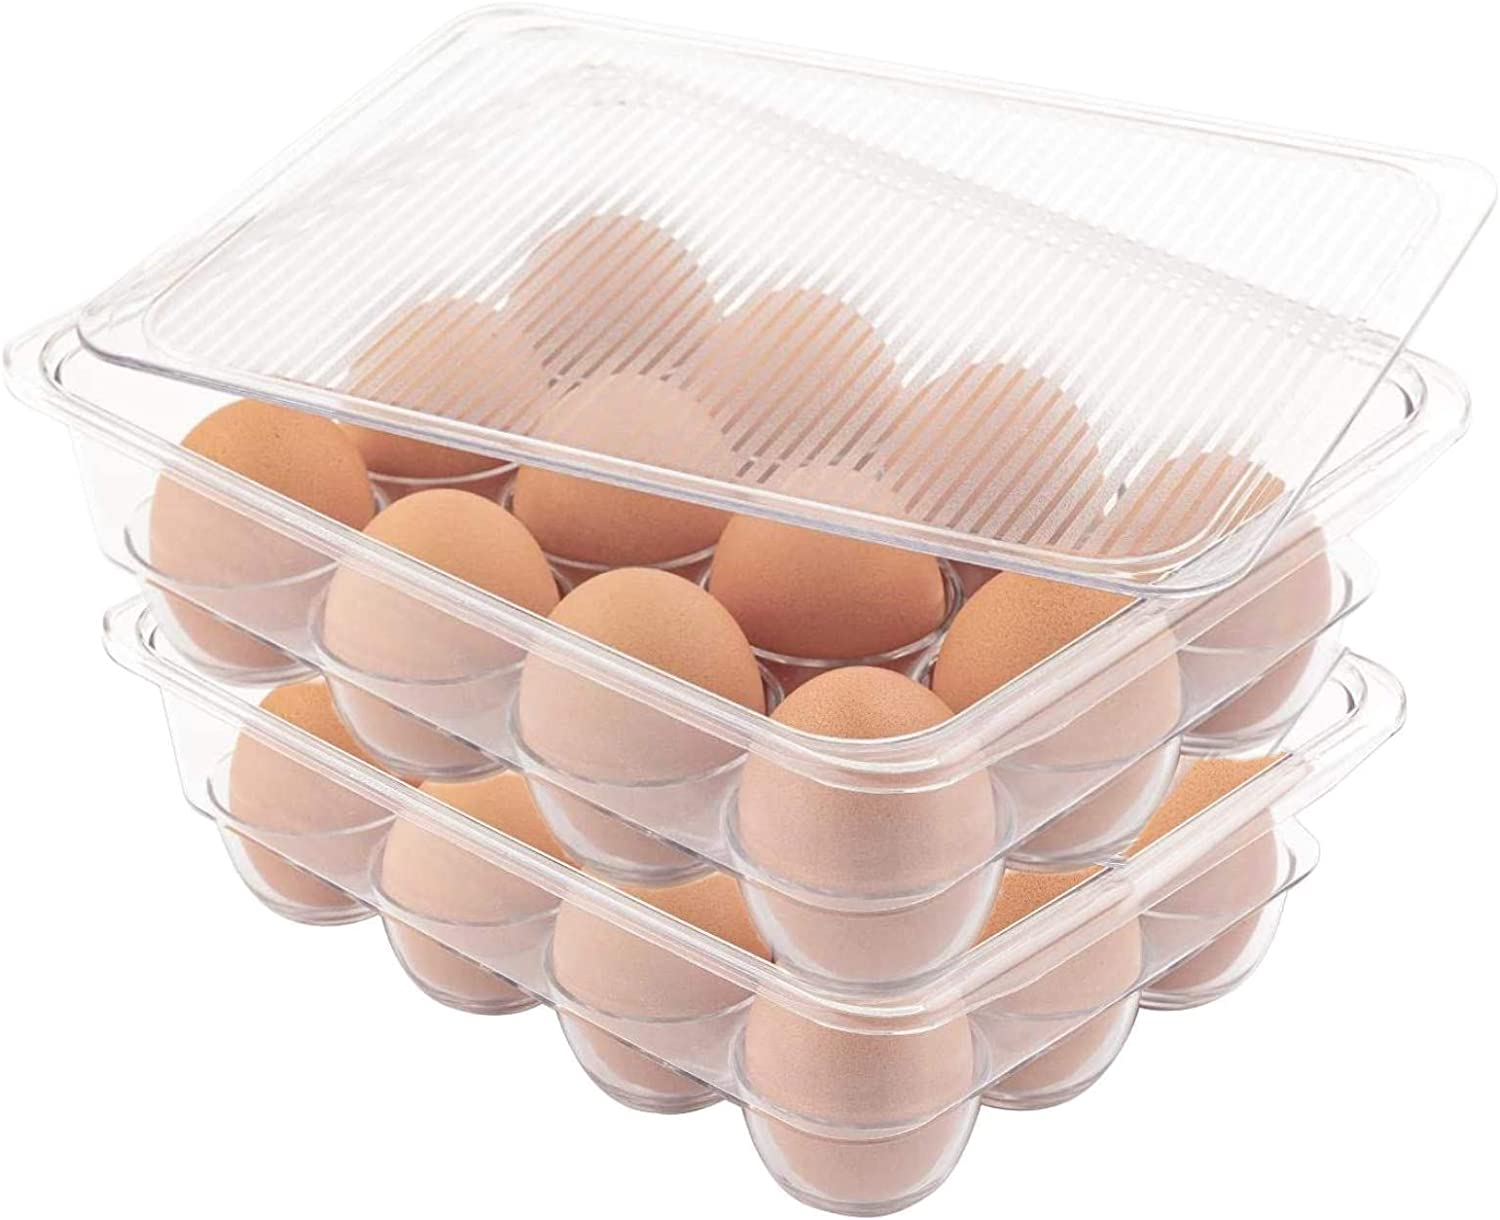 Set of 2 (12 Eggs/Each) - JinaMart Fridge Bin BPA-Free Plastic Stackable Egg Holder with Lid for Refrigerator | Deviled Egg Storage Tray/Drawer for Fridge, Kitchen and Tableware (Egg Holder)